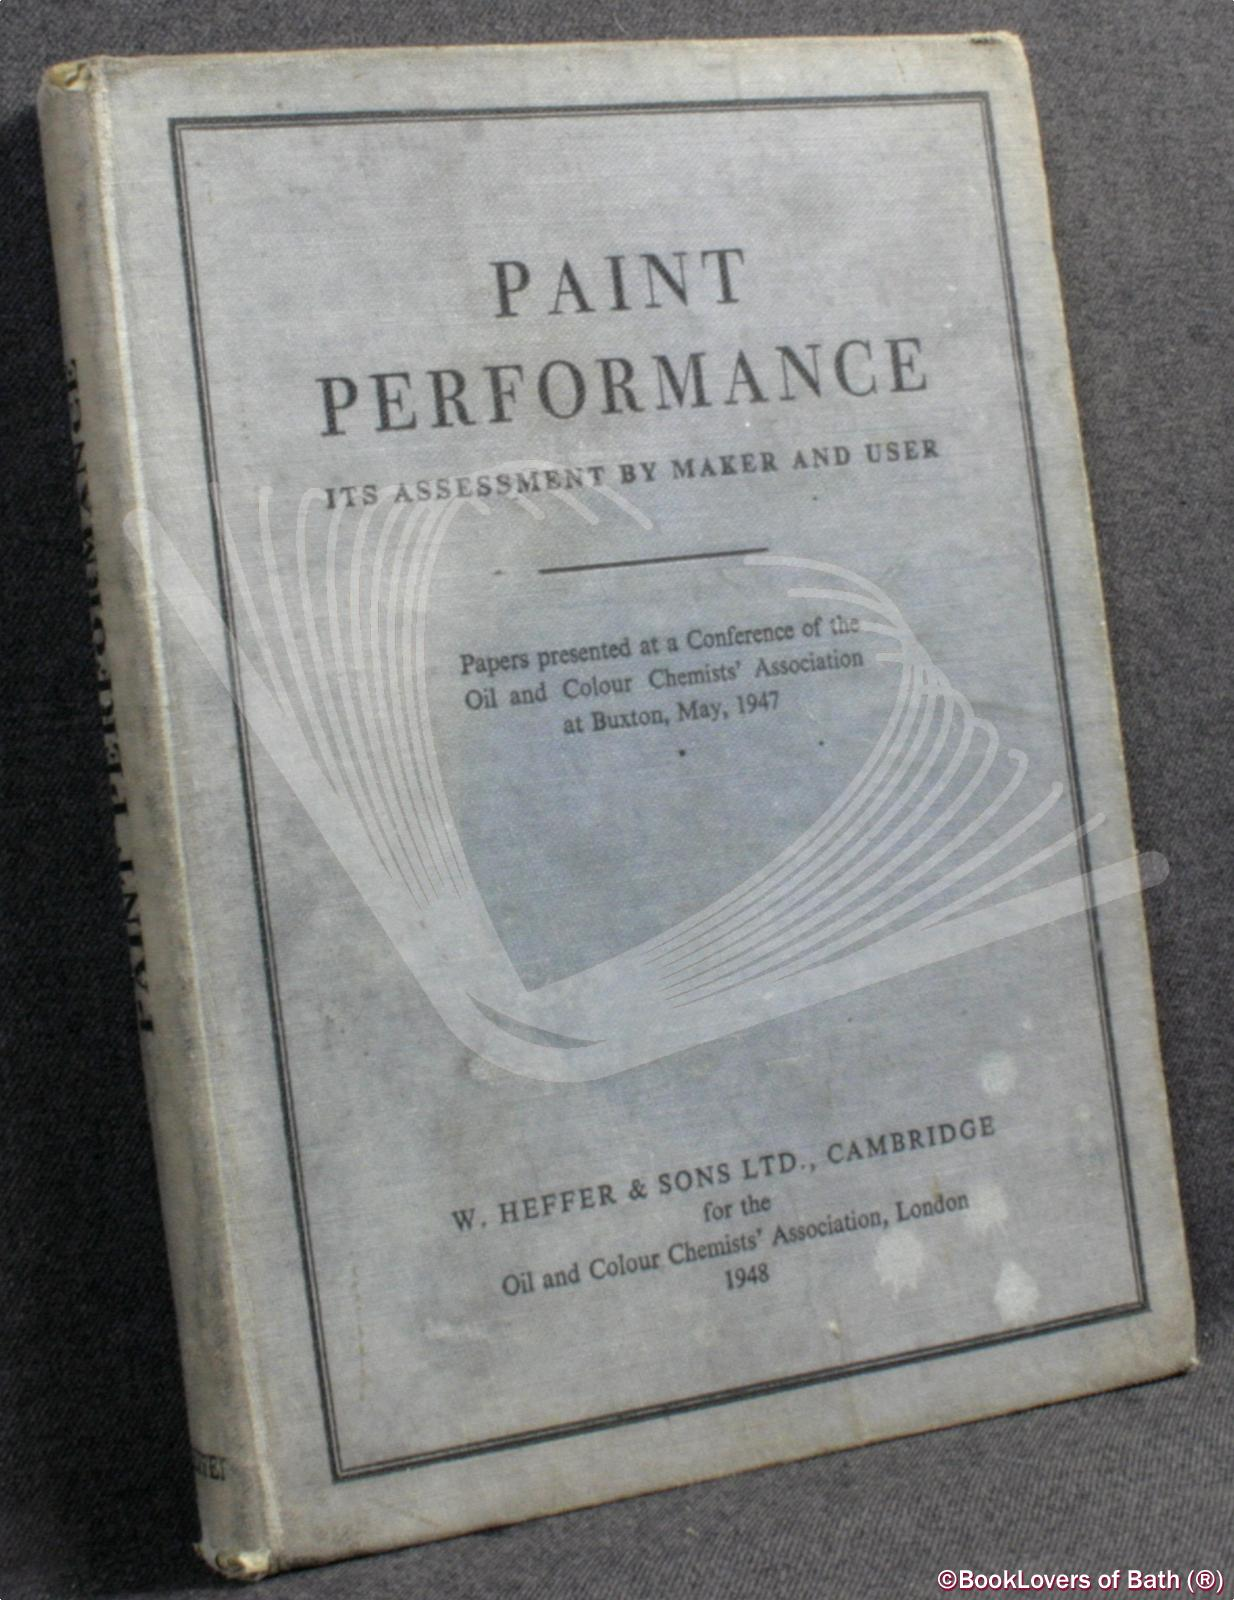 Paint Performance: Its Assessment by Maker and User, Papers Presented At a Conference of the Oil and Colour Chemists' Association At Buxton, May 1947 - Anon.